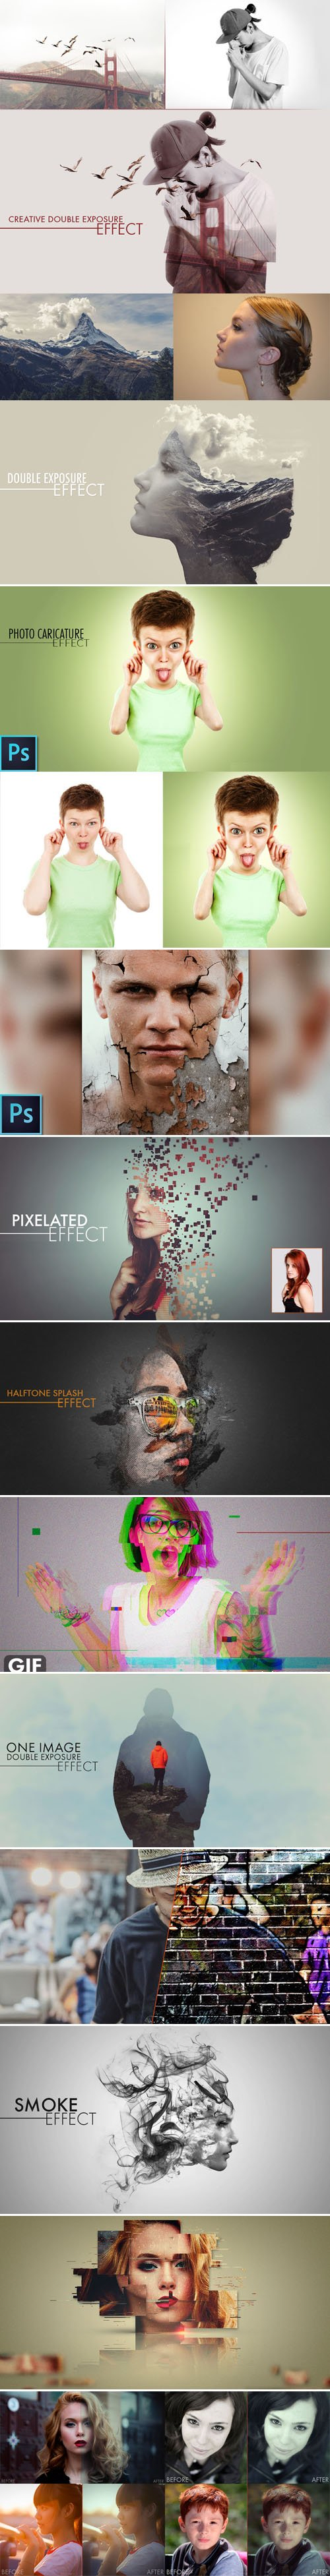 12 Awesome PSD Effects Bundle